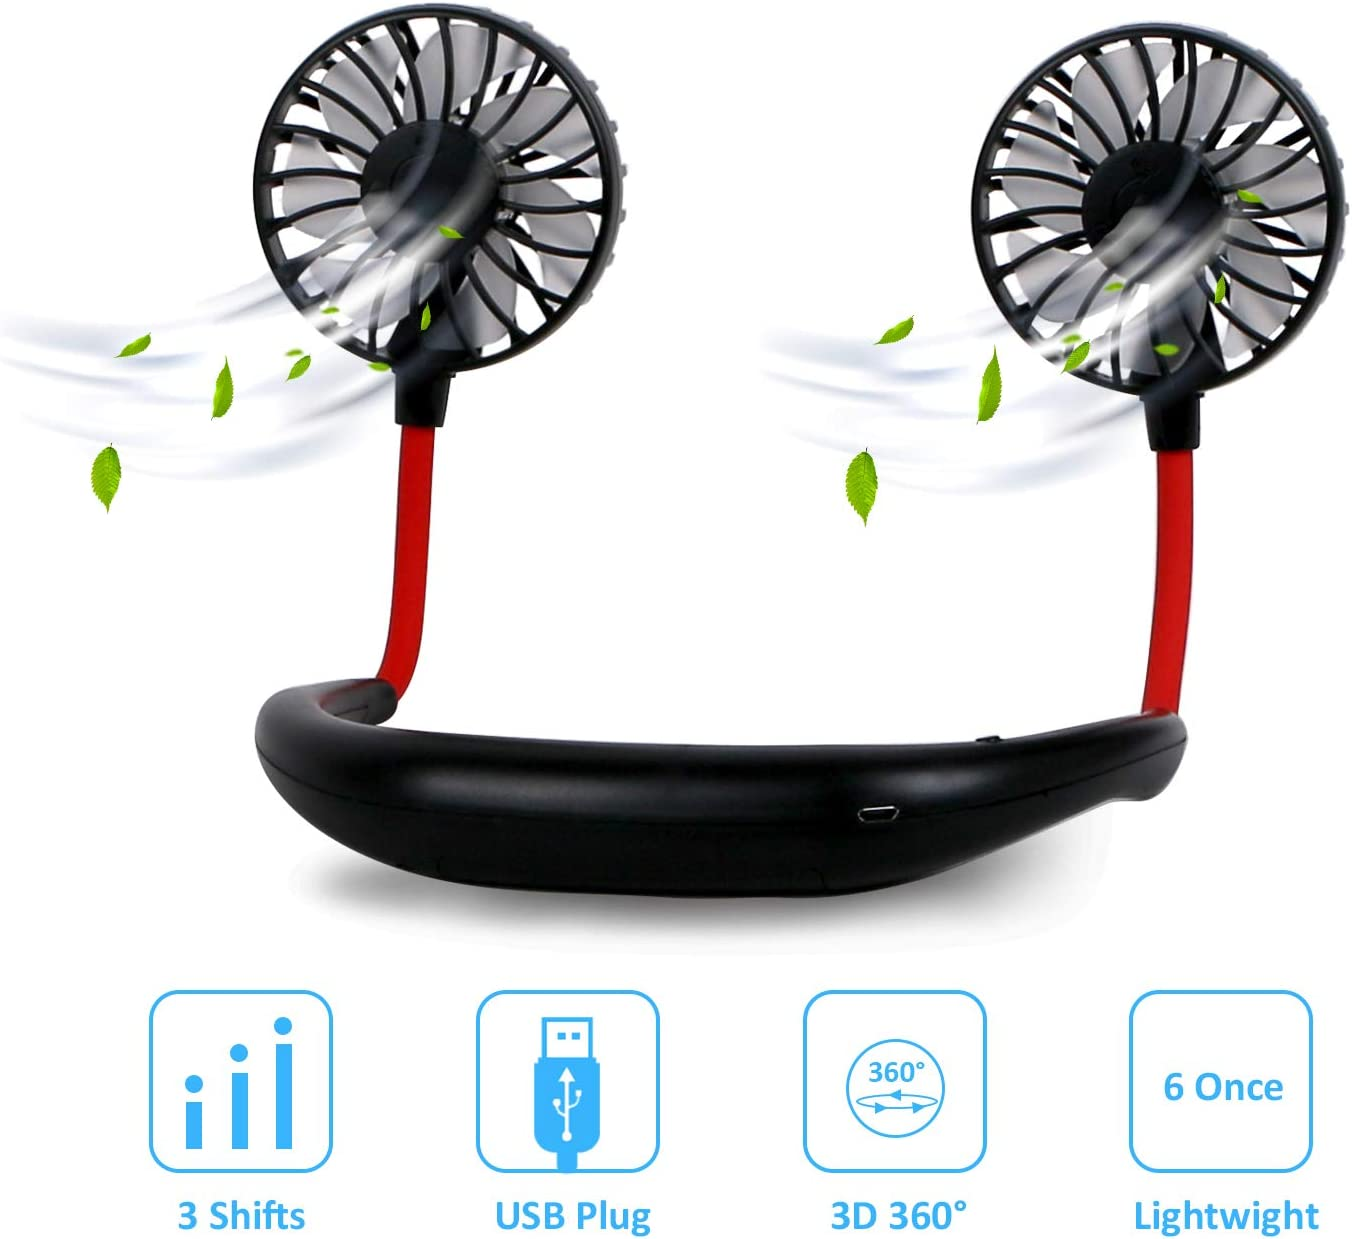 Lefree Portable Neck Fan,Hands Free 360° Free Rotation Neckband Fan,3 Speeds Adjustment with Foam Aroma for Personal Fan,Sport Fans Portable Rechargable for Woman Jogging,Cycling,Traveling.